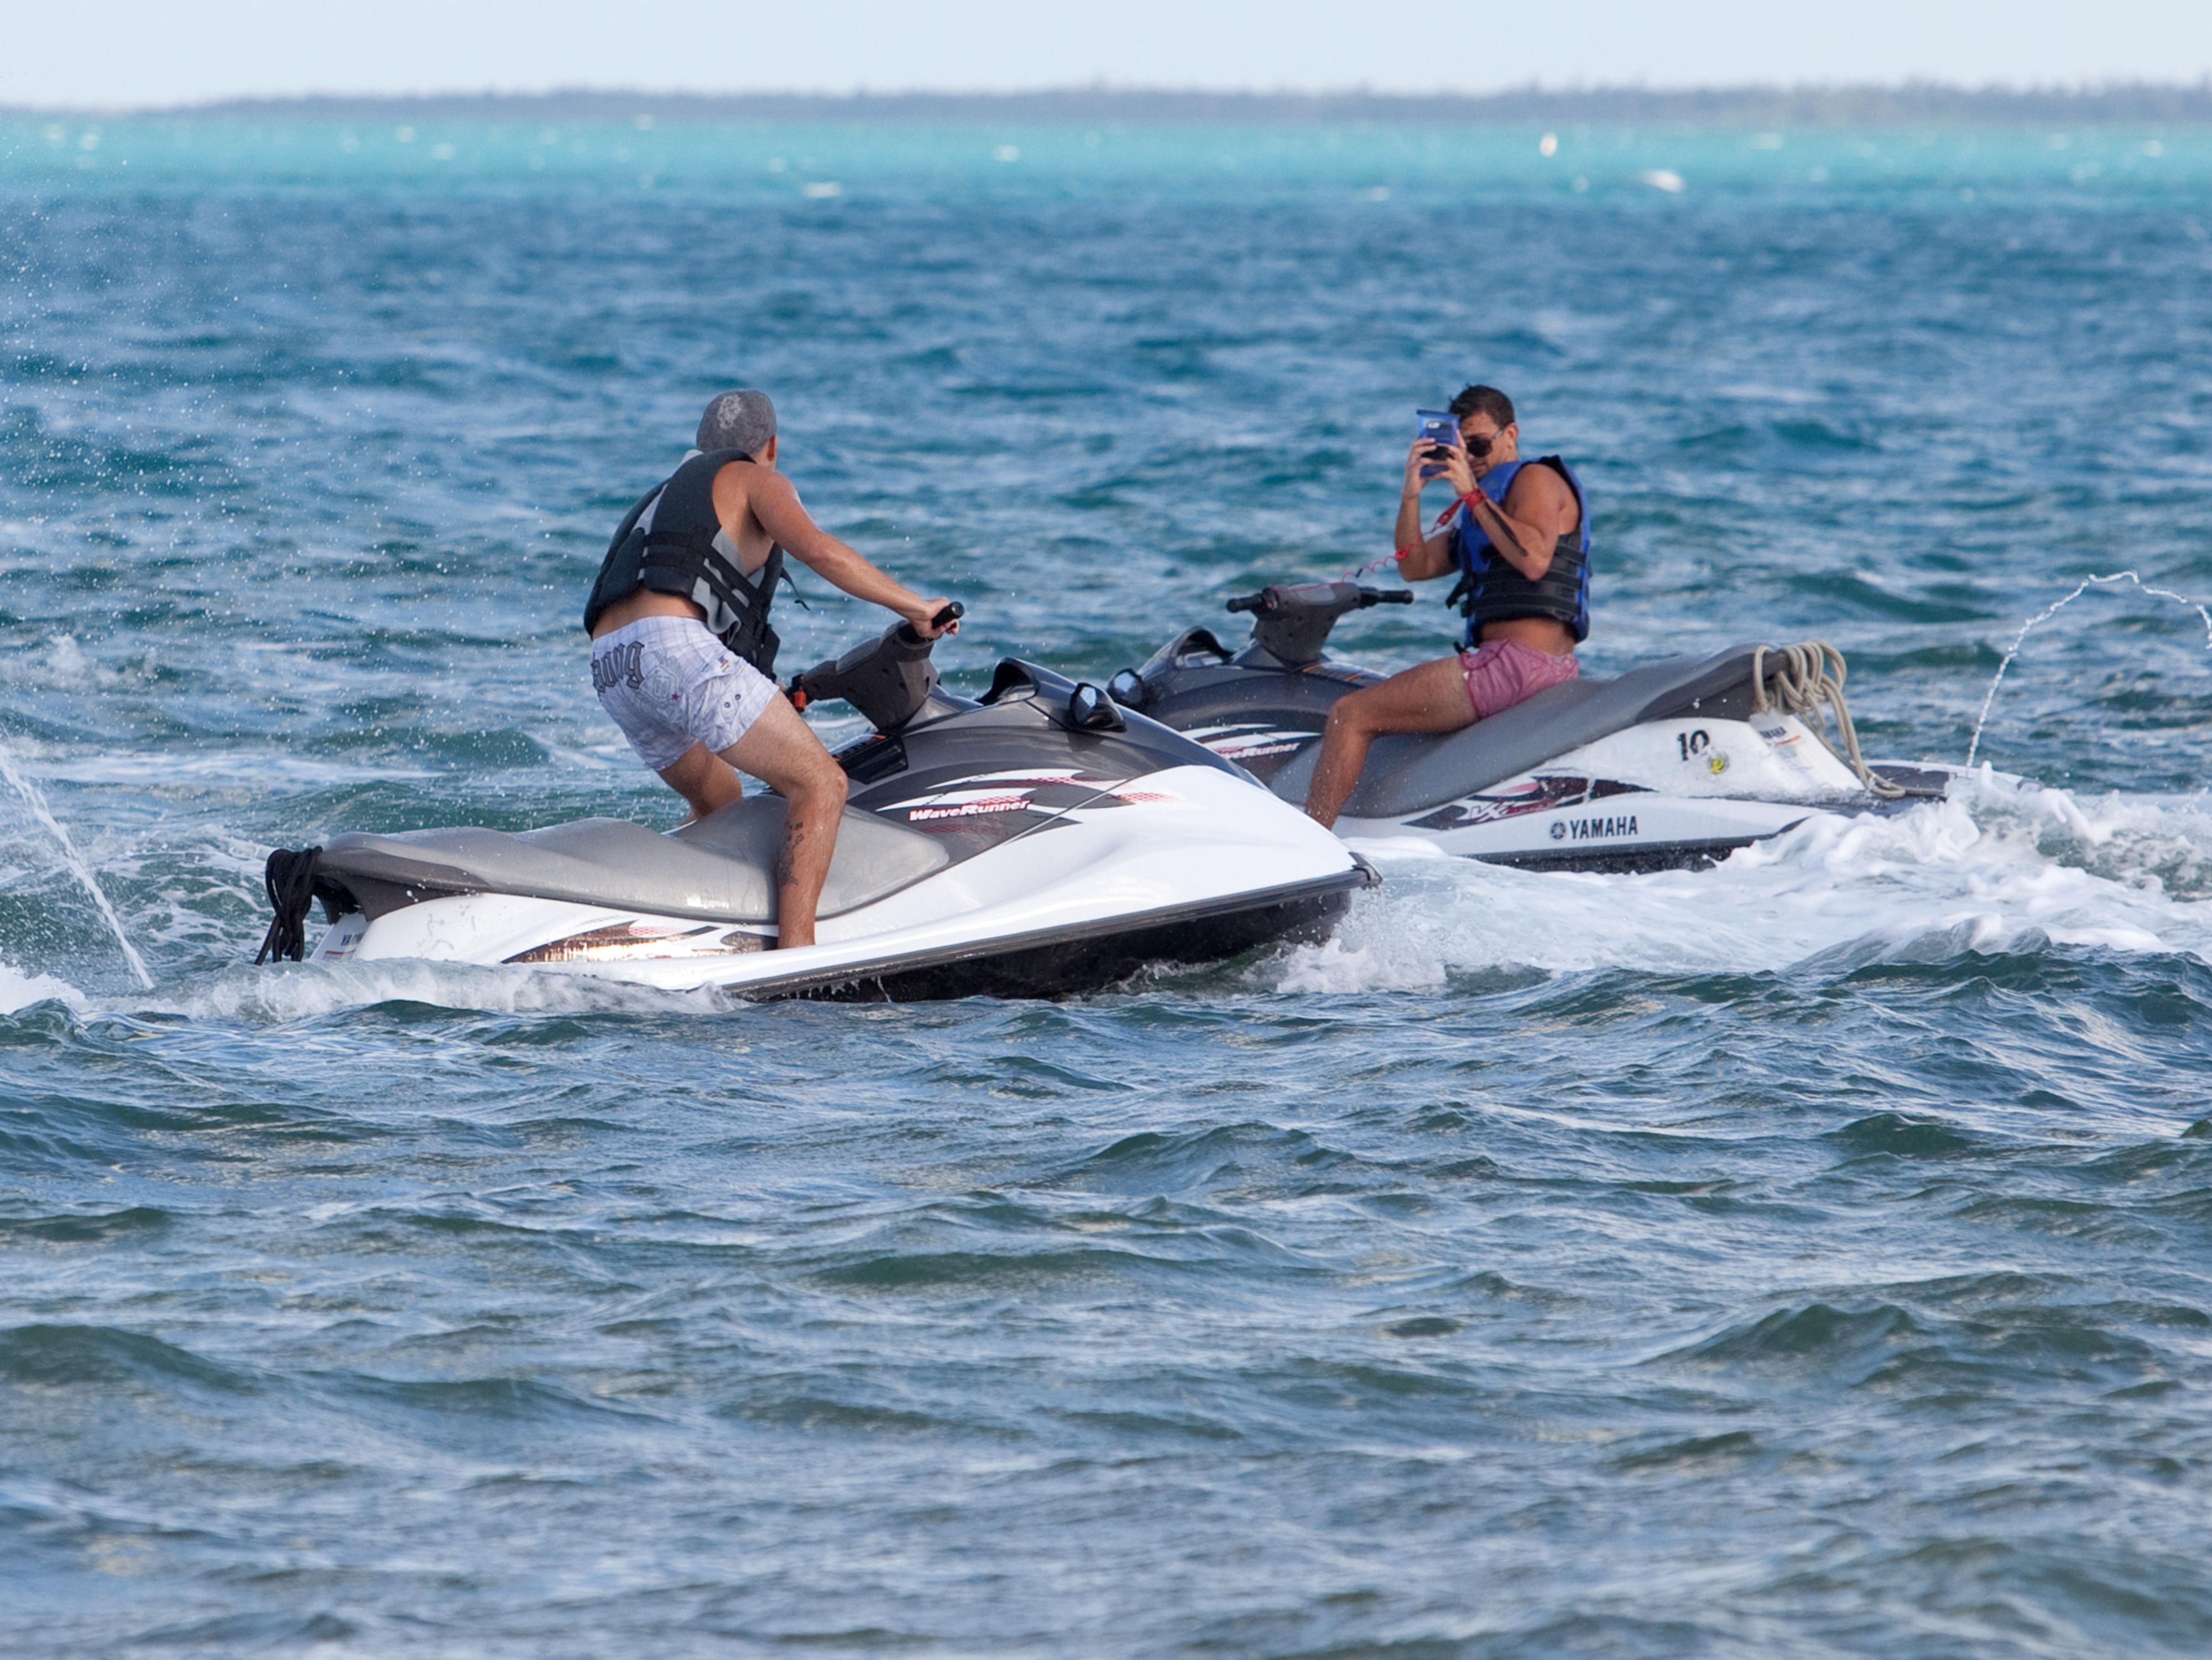 Jetskis are available for rent at the Holiday Inn Resort